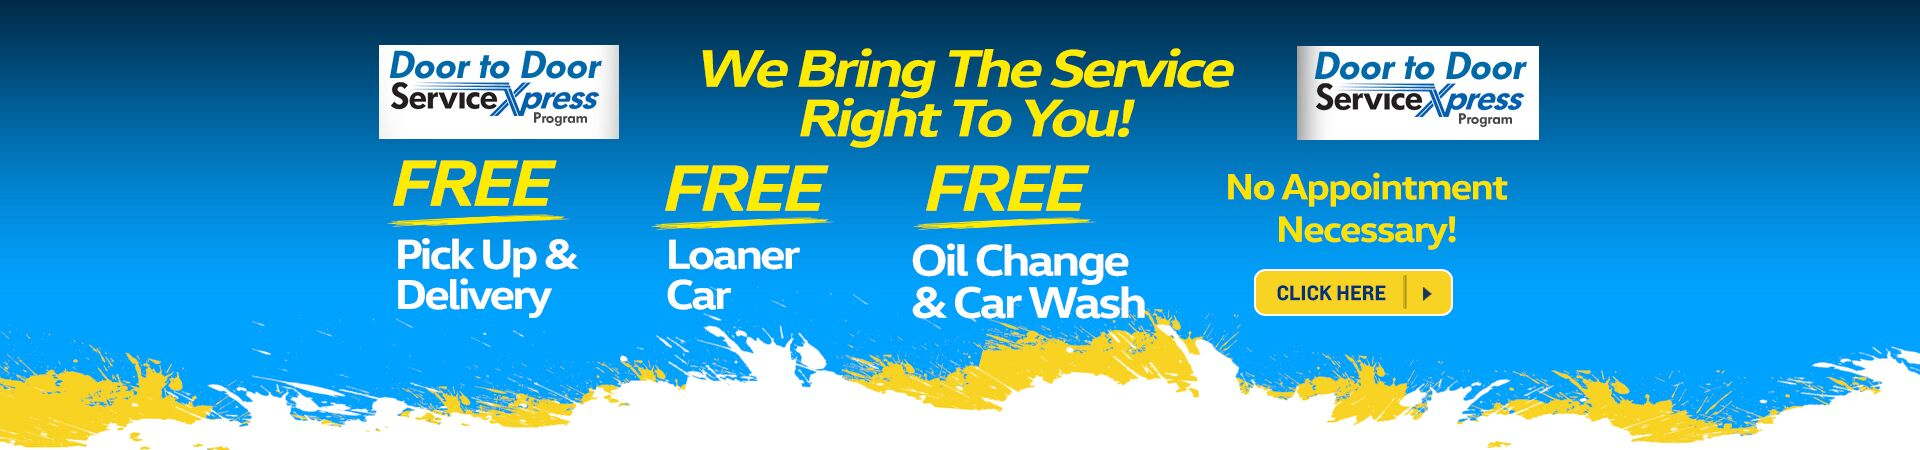 warranty basic only dealer based of and data dealerfire not car separate in transferability to vw suv greenwood other on bumper reinbold dreyer claim januarydealerpgbanners coupons volkswagen service length published manufacturers